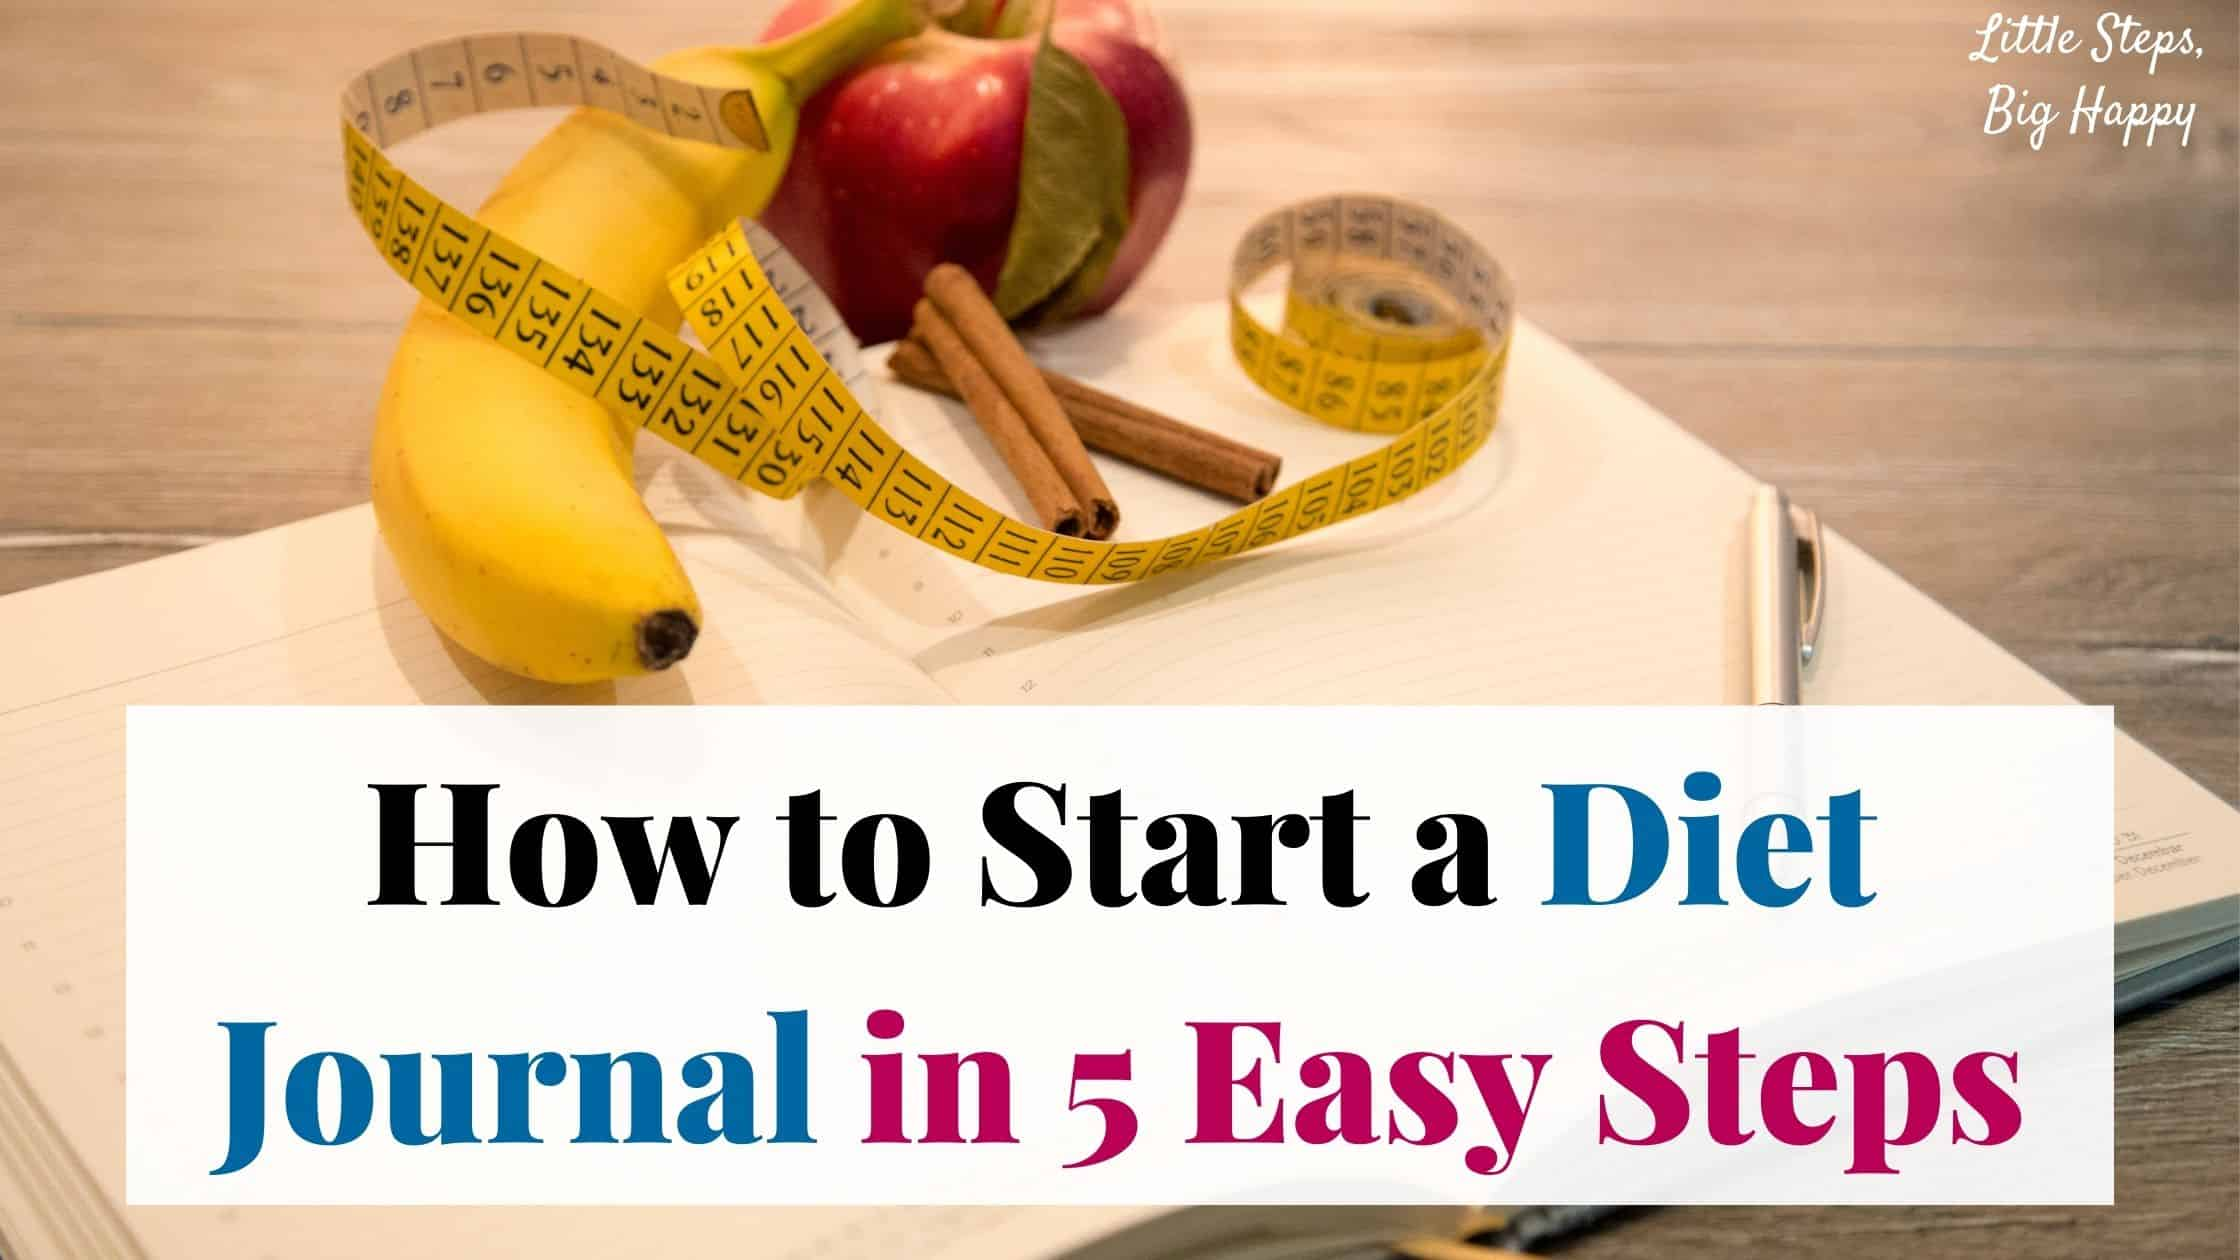 How to Start a Diet Journal in 5 Easy Steps